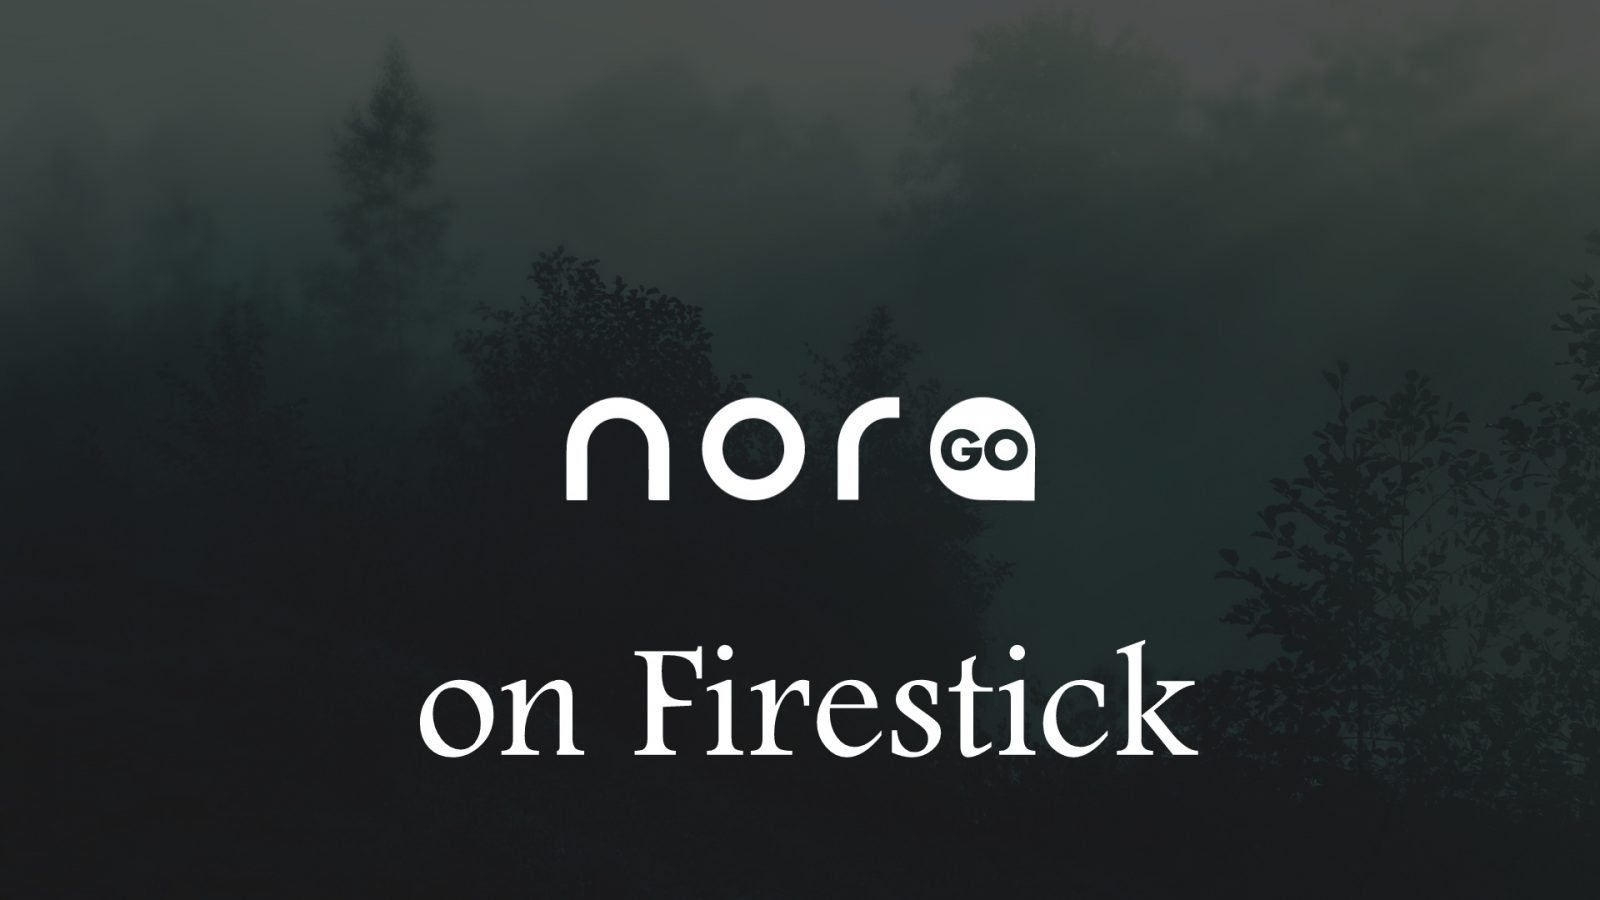 How to install Nora Go on Firestick? [2019] - IPTV Player Guide